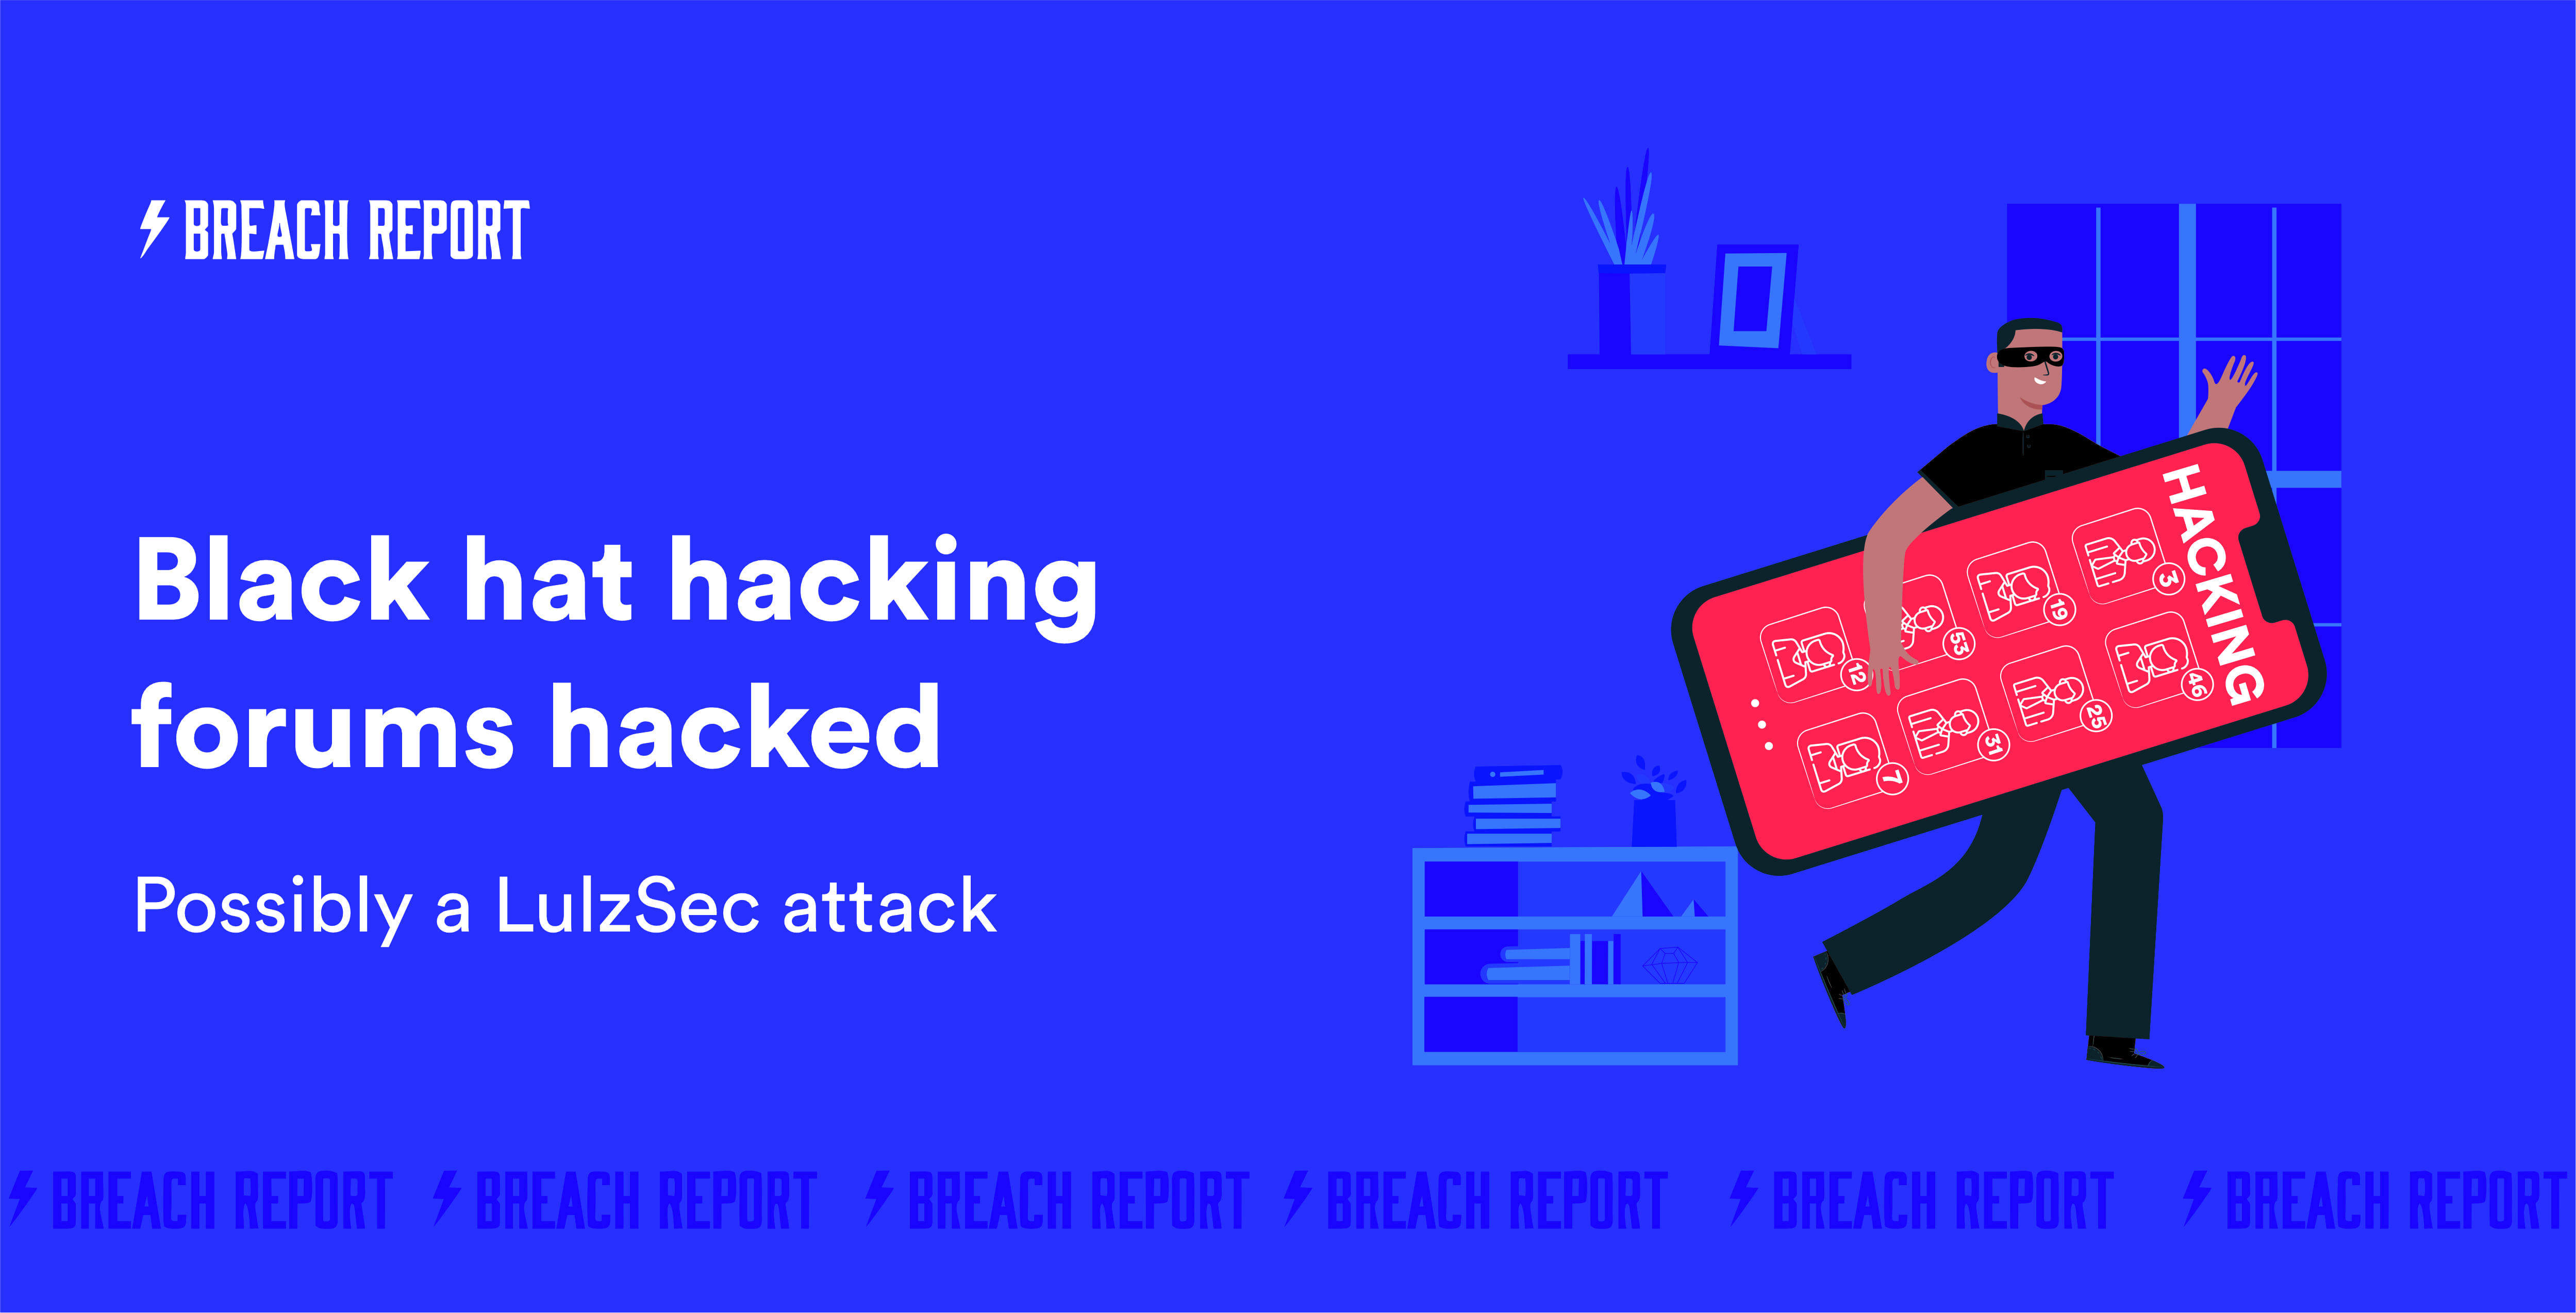 lulzsec attack black hat hackers lolzsec data breach breach report email compromised cyber security news hackers